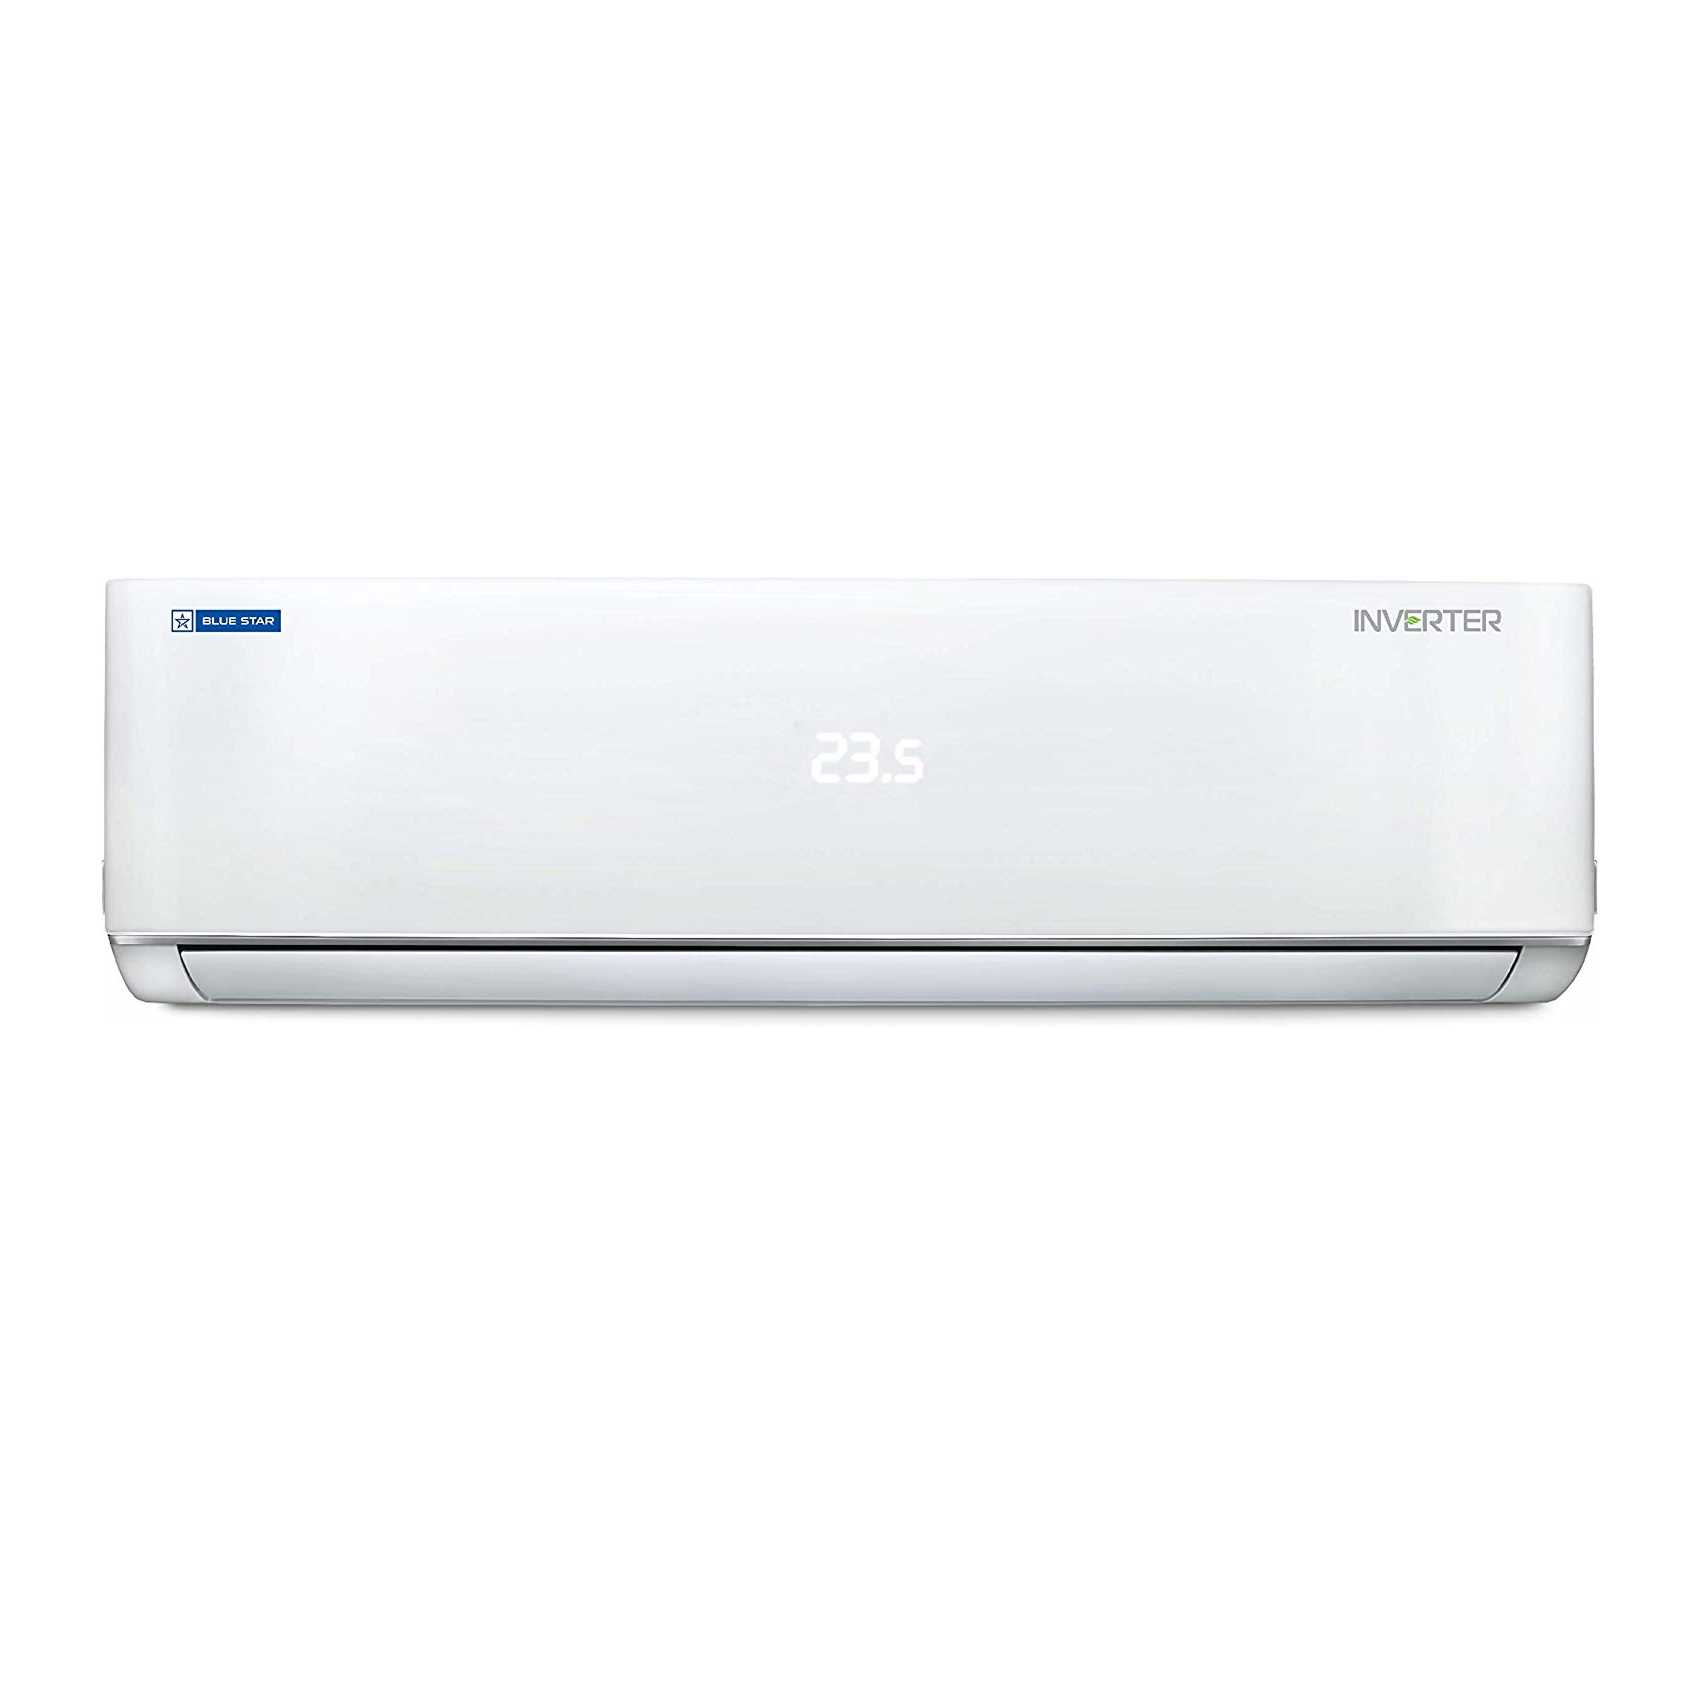 Blue Star IC318MATU 1.5 Ton 3 Star Inverter Split AC